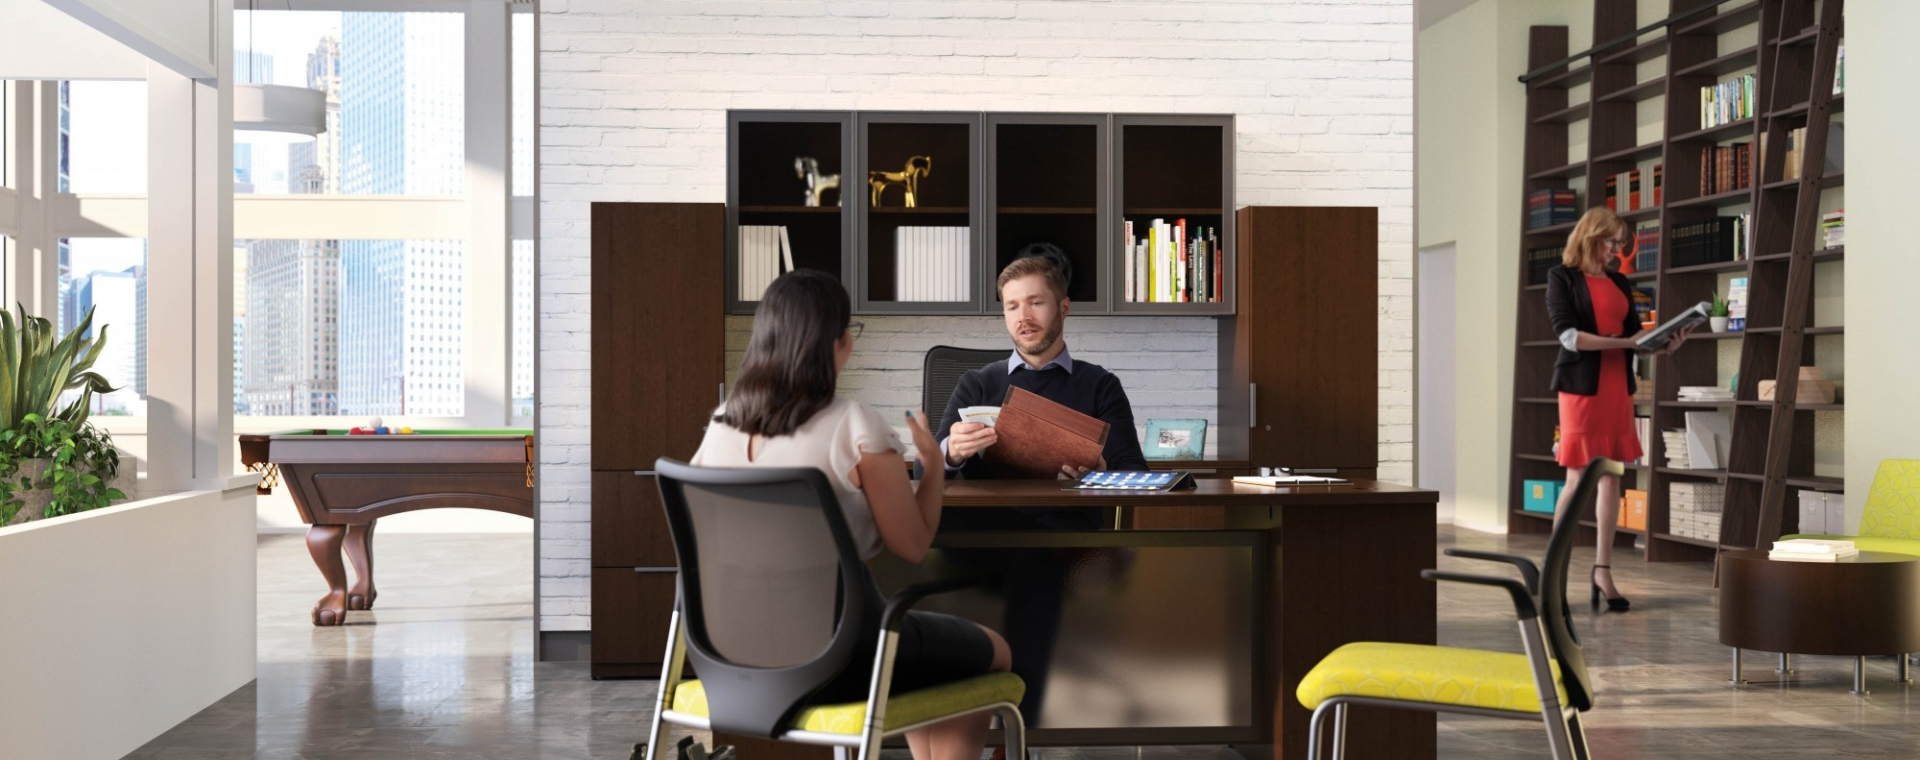 open air office space with a man and woman discussing work at his desk. Yellow stationary high back chairs. Dark wood wall height bookshelves line the walls.